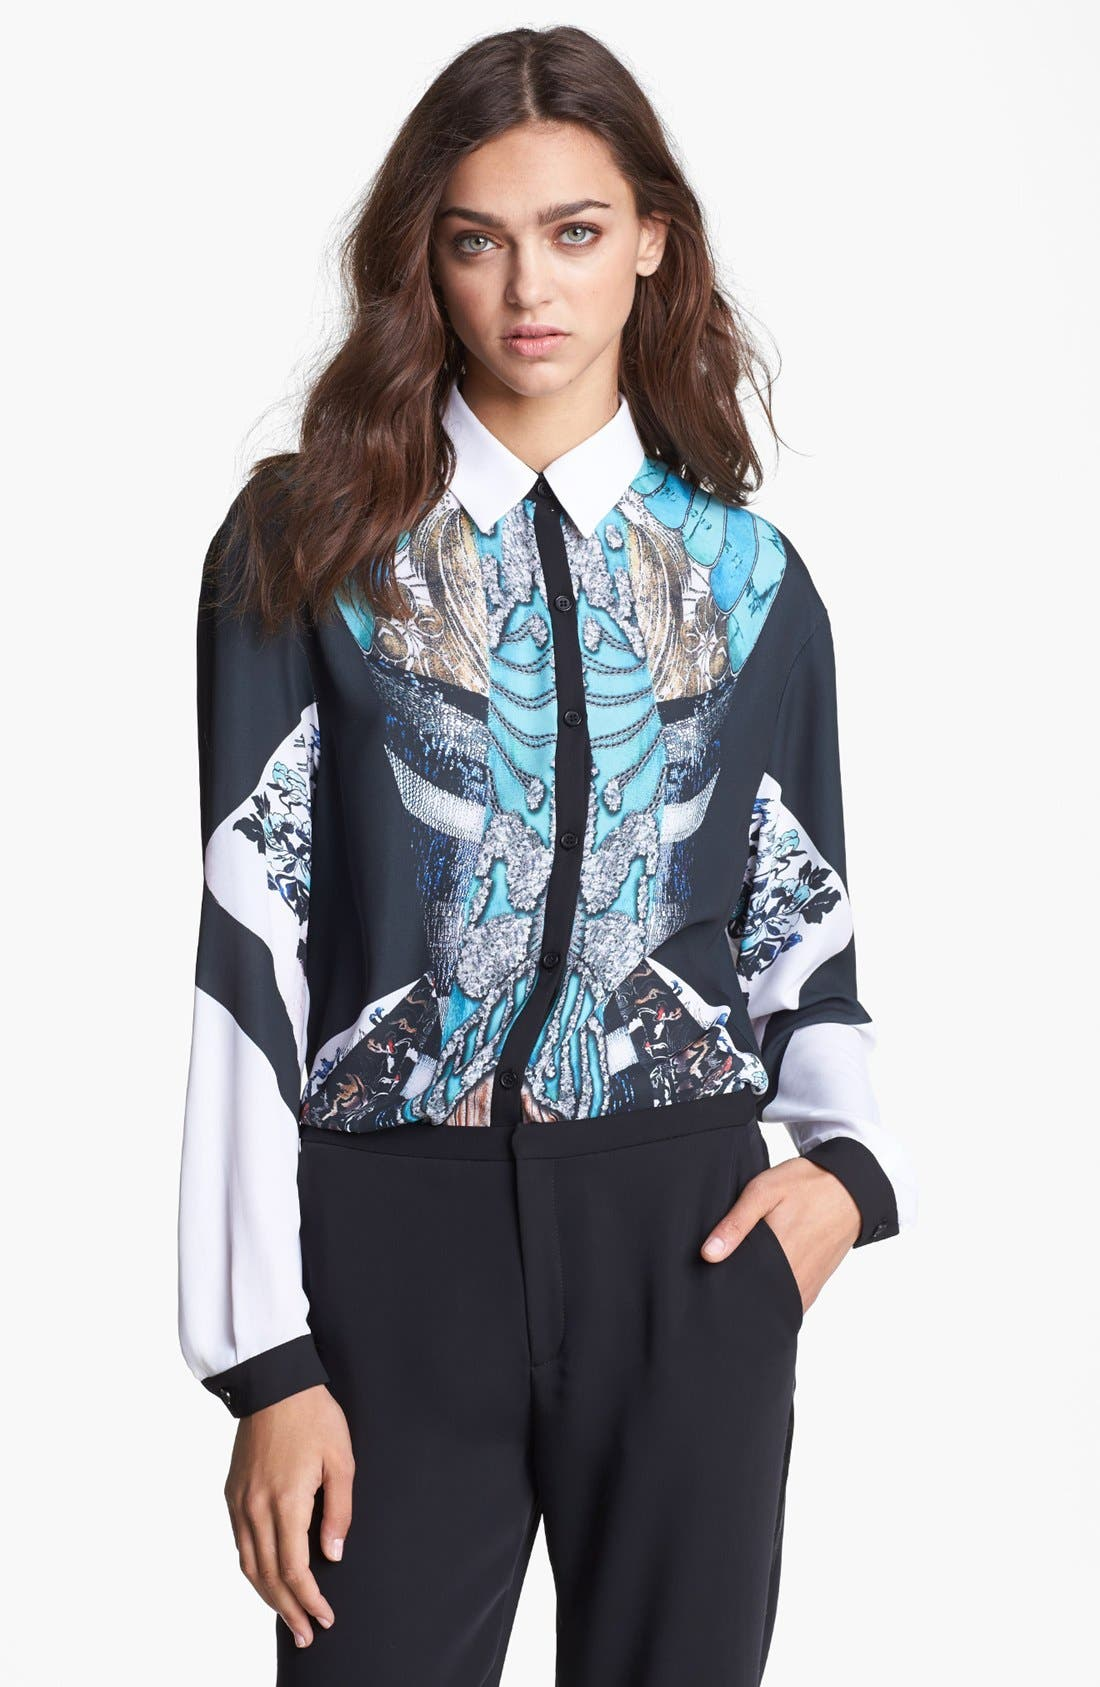 Alternate Image 1 Selected - Clover Canyon 'All That Jazz' Print Blouse